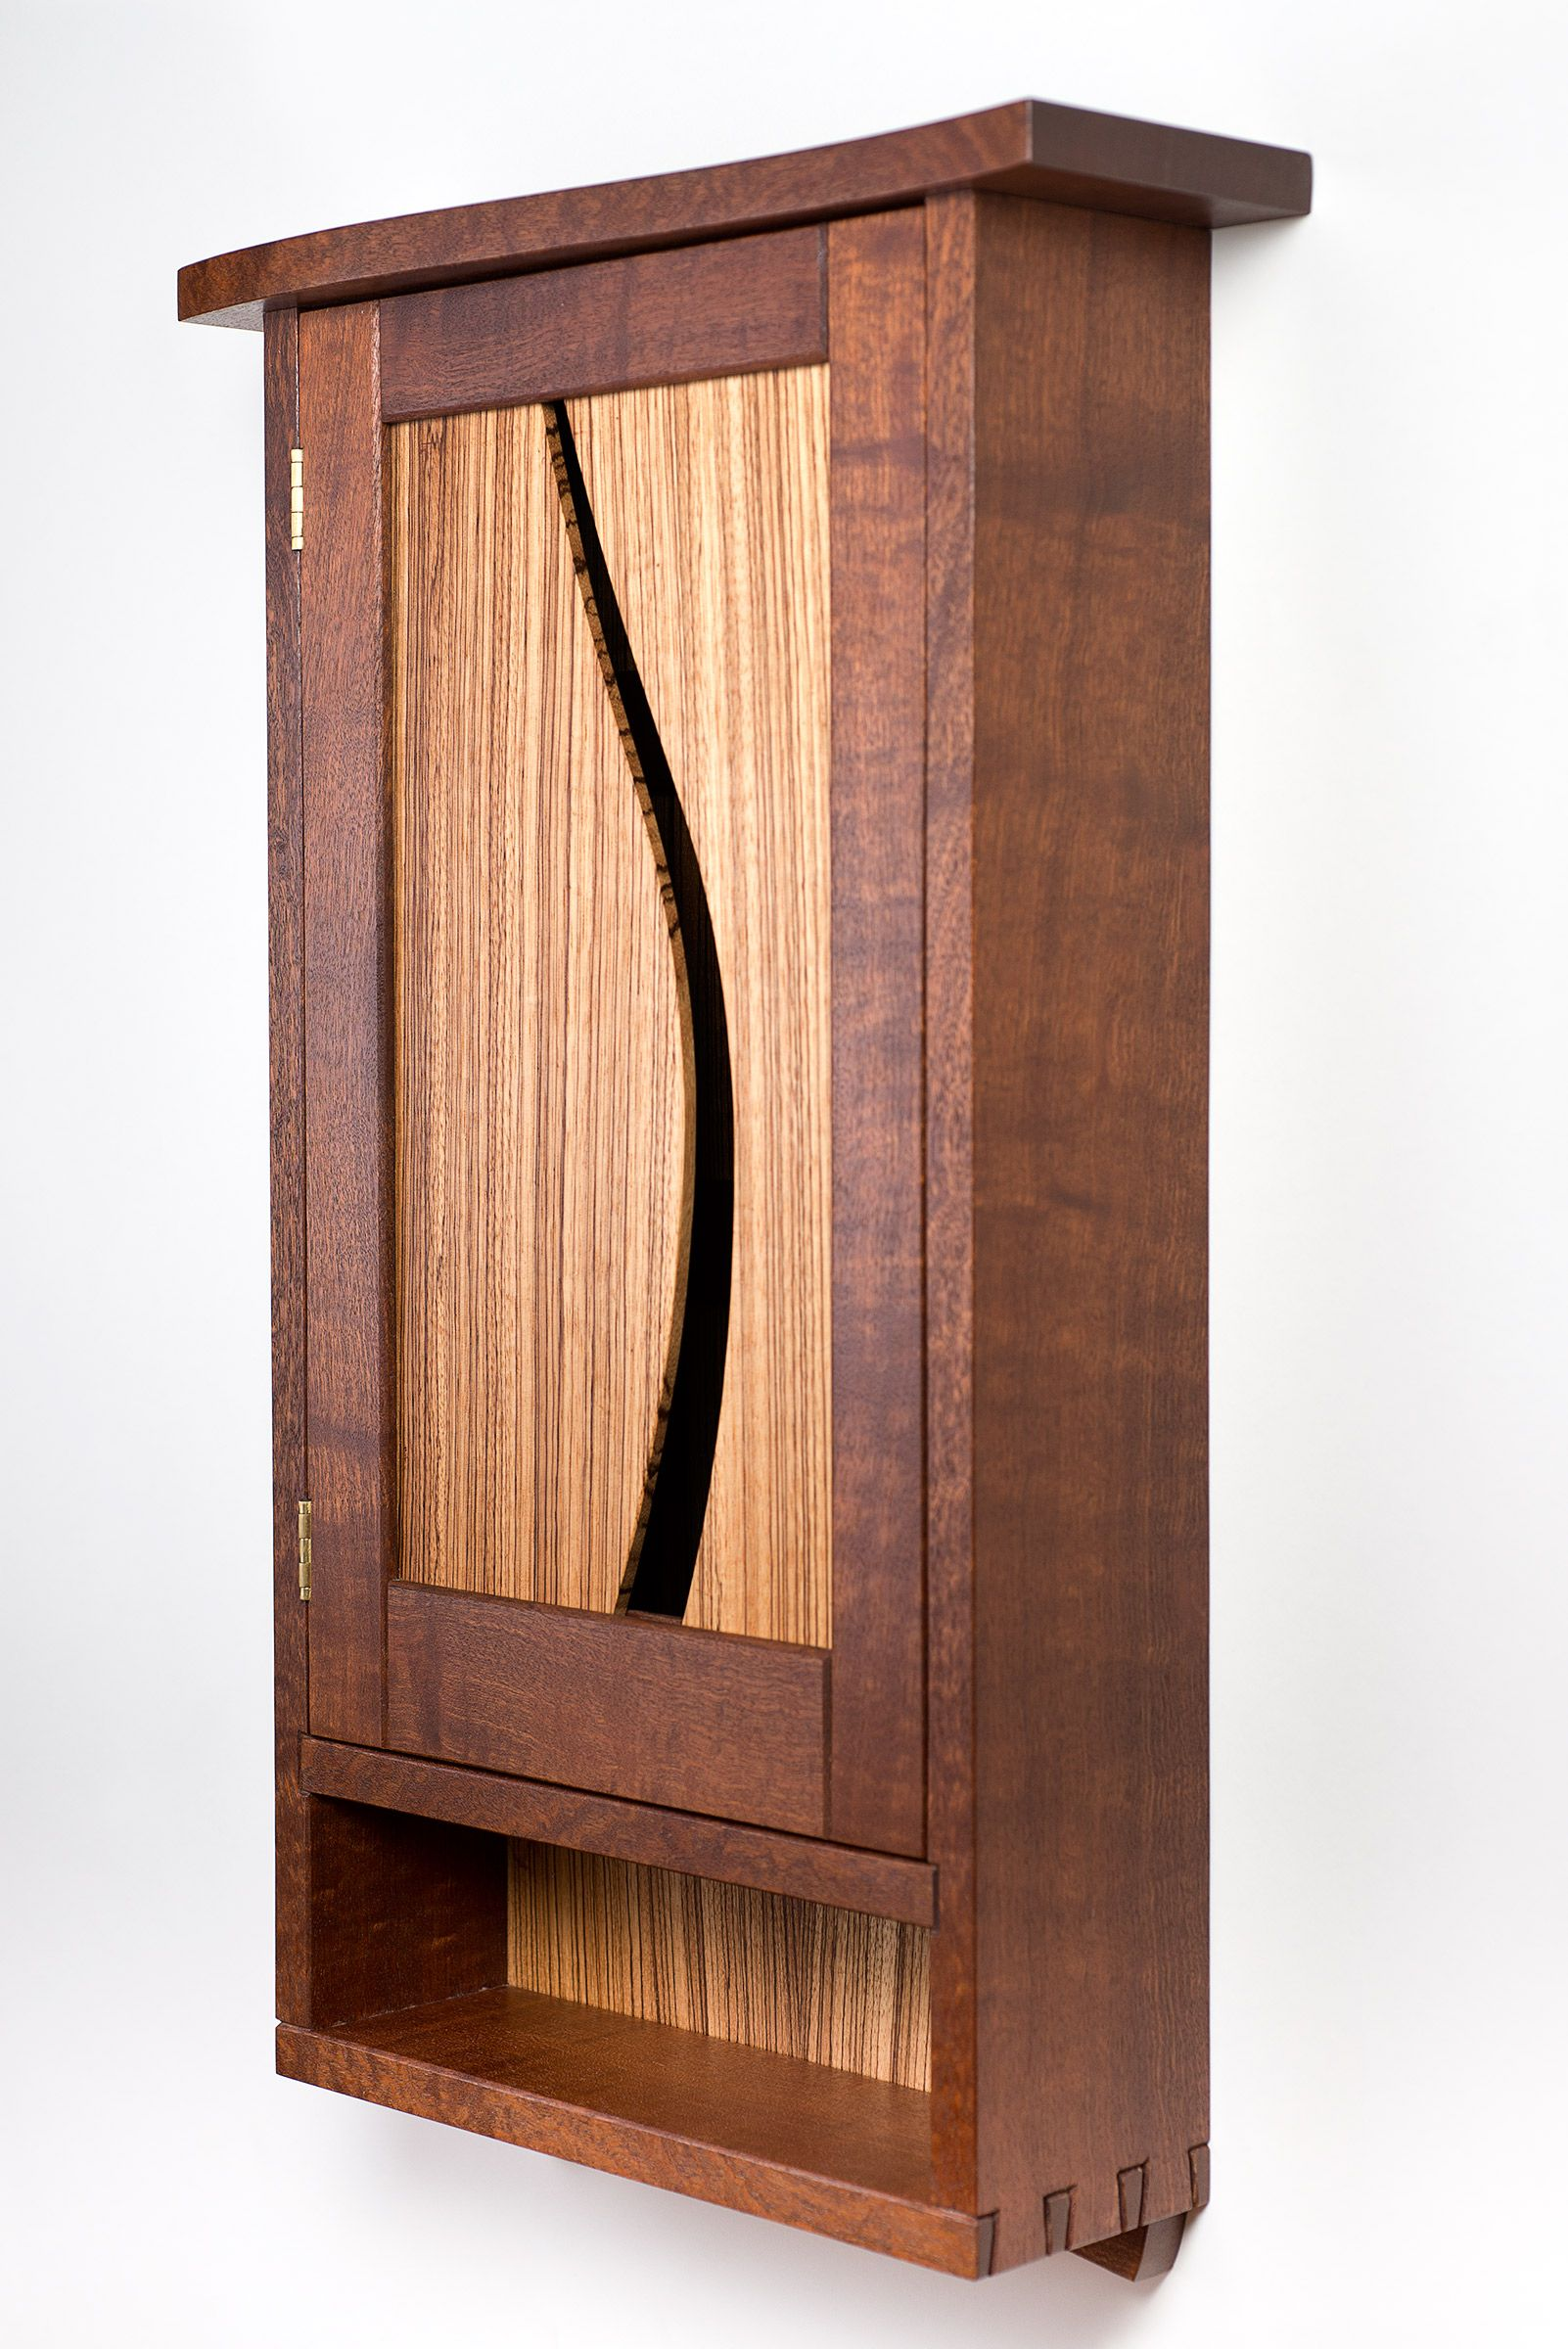 Woodworking Ii Class: Sapele And Zebrawood Wall Cabinet Designed And  Constructed By Brian Hubel At